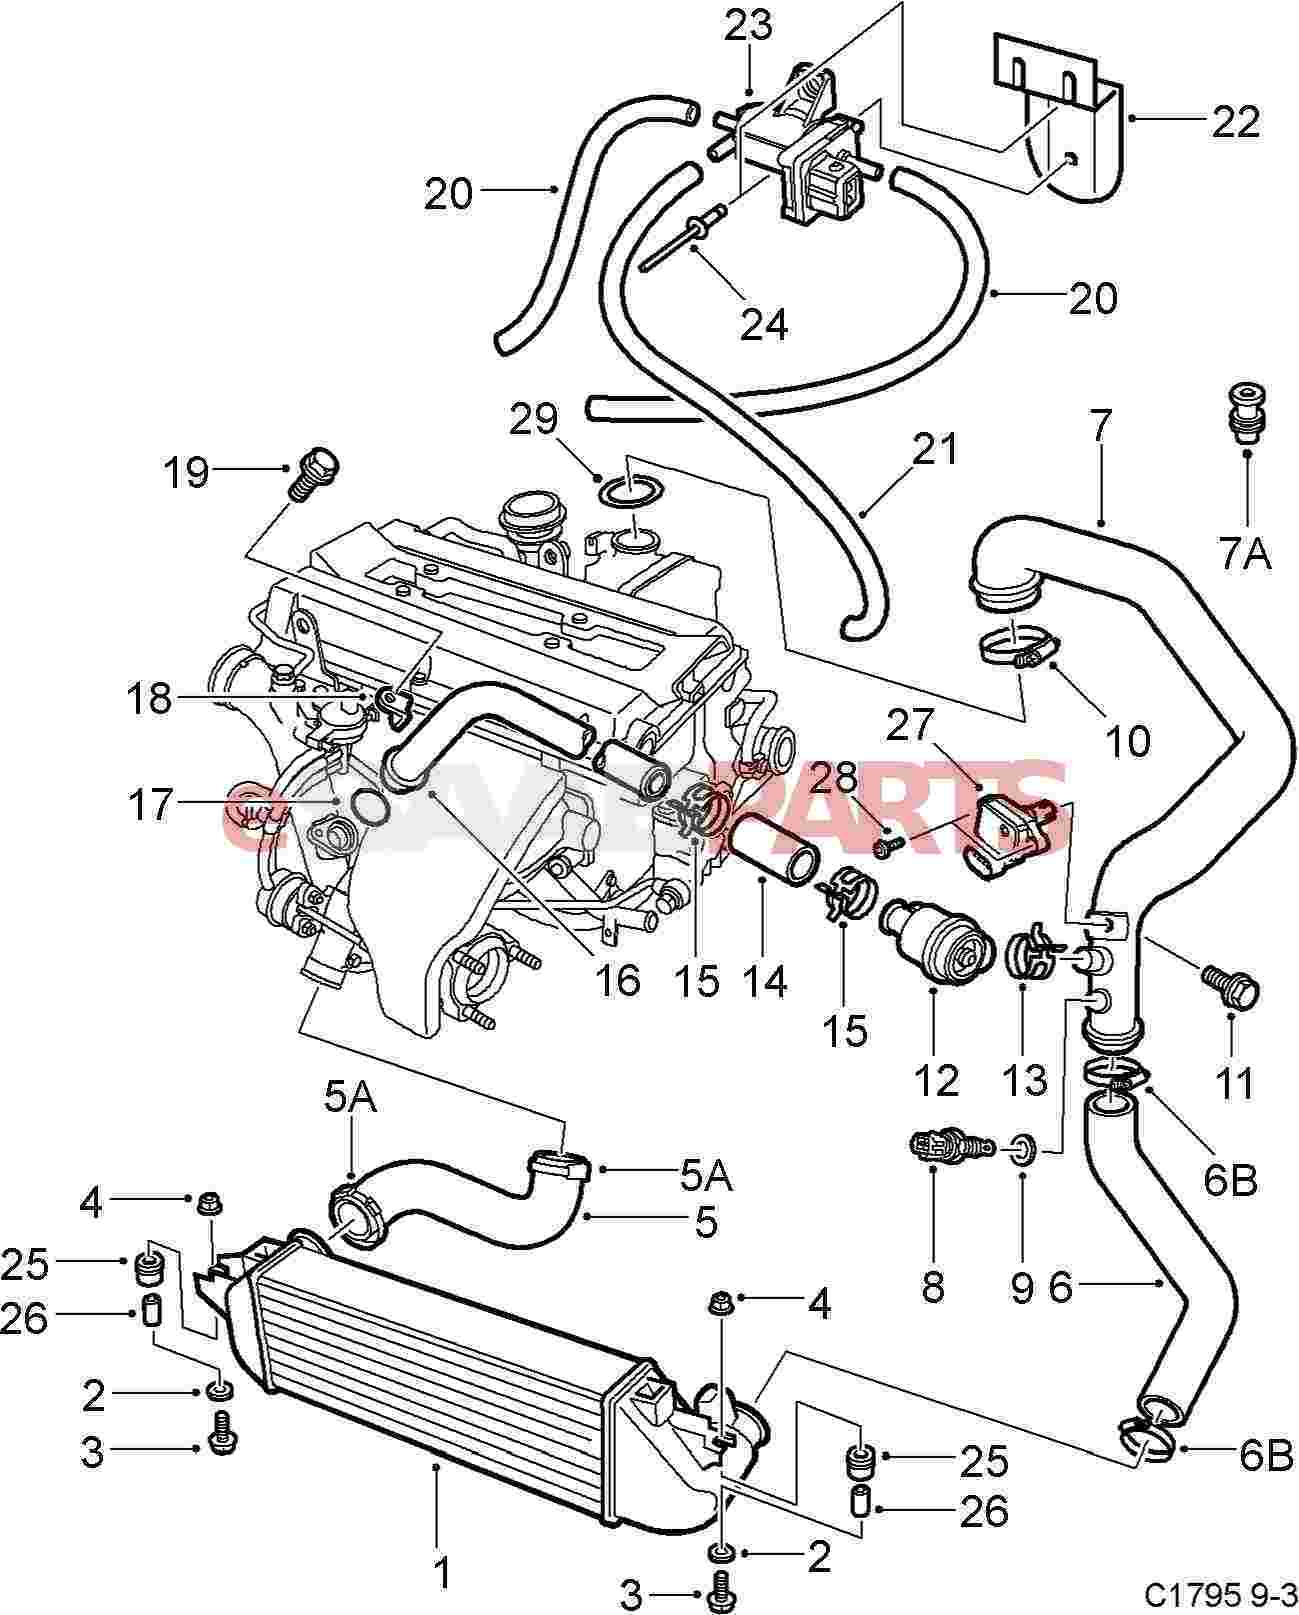 gear box parts diagram  gear  free engine image for user